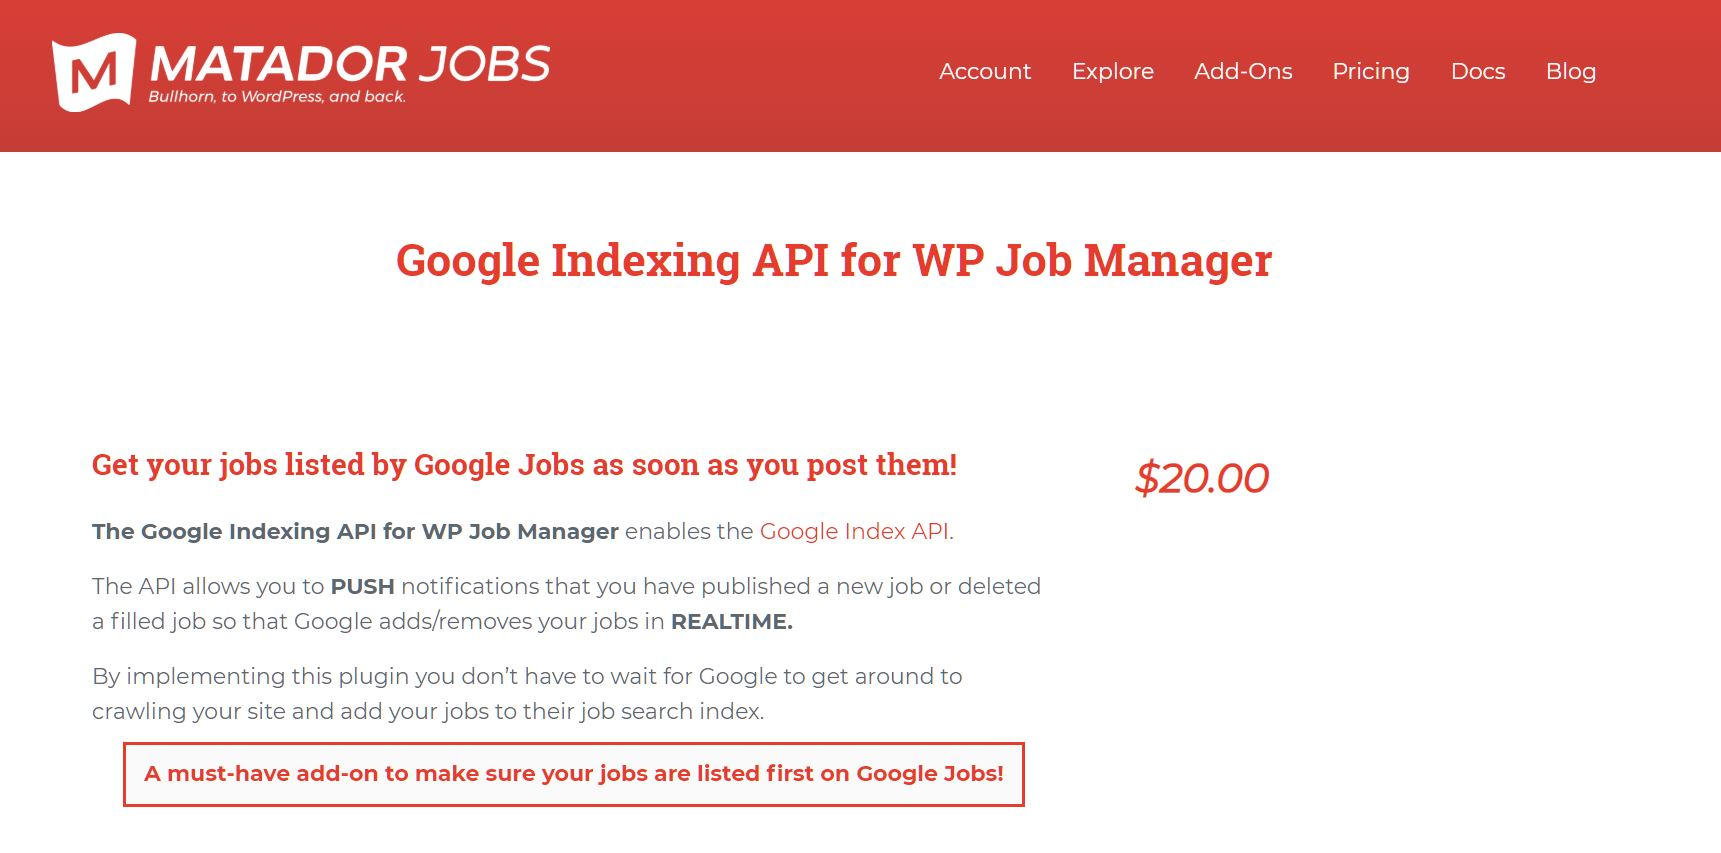 Google Indexing API for WP Job Manager screenshot